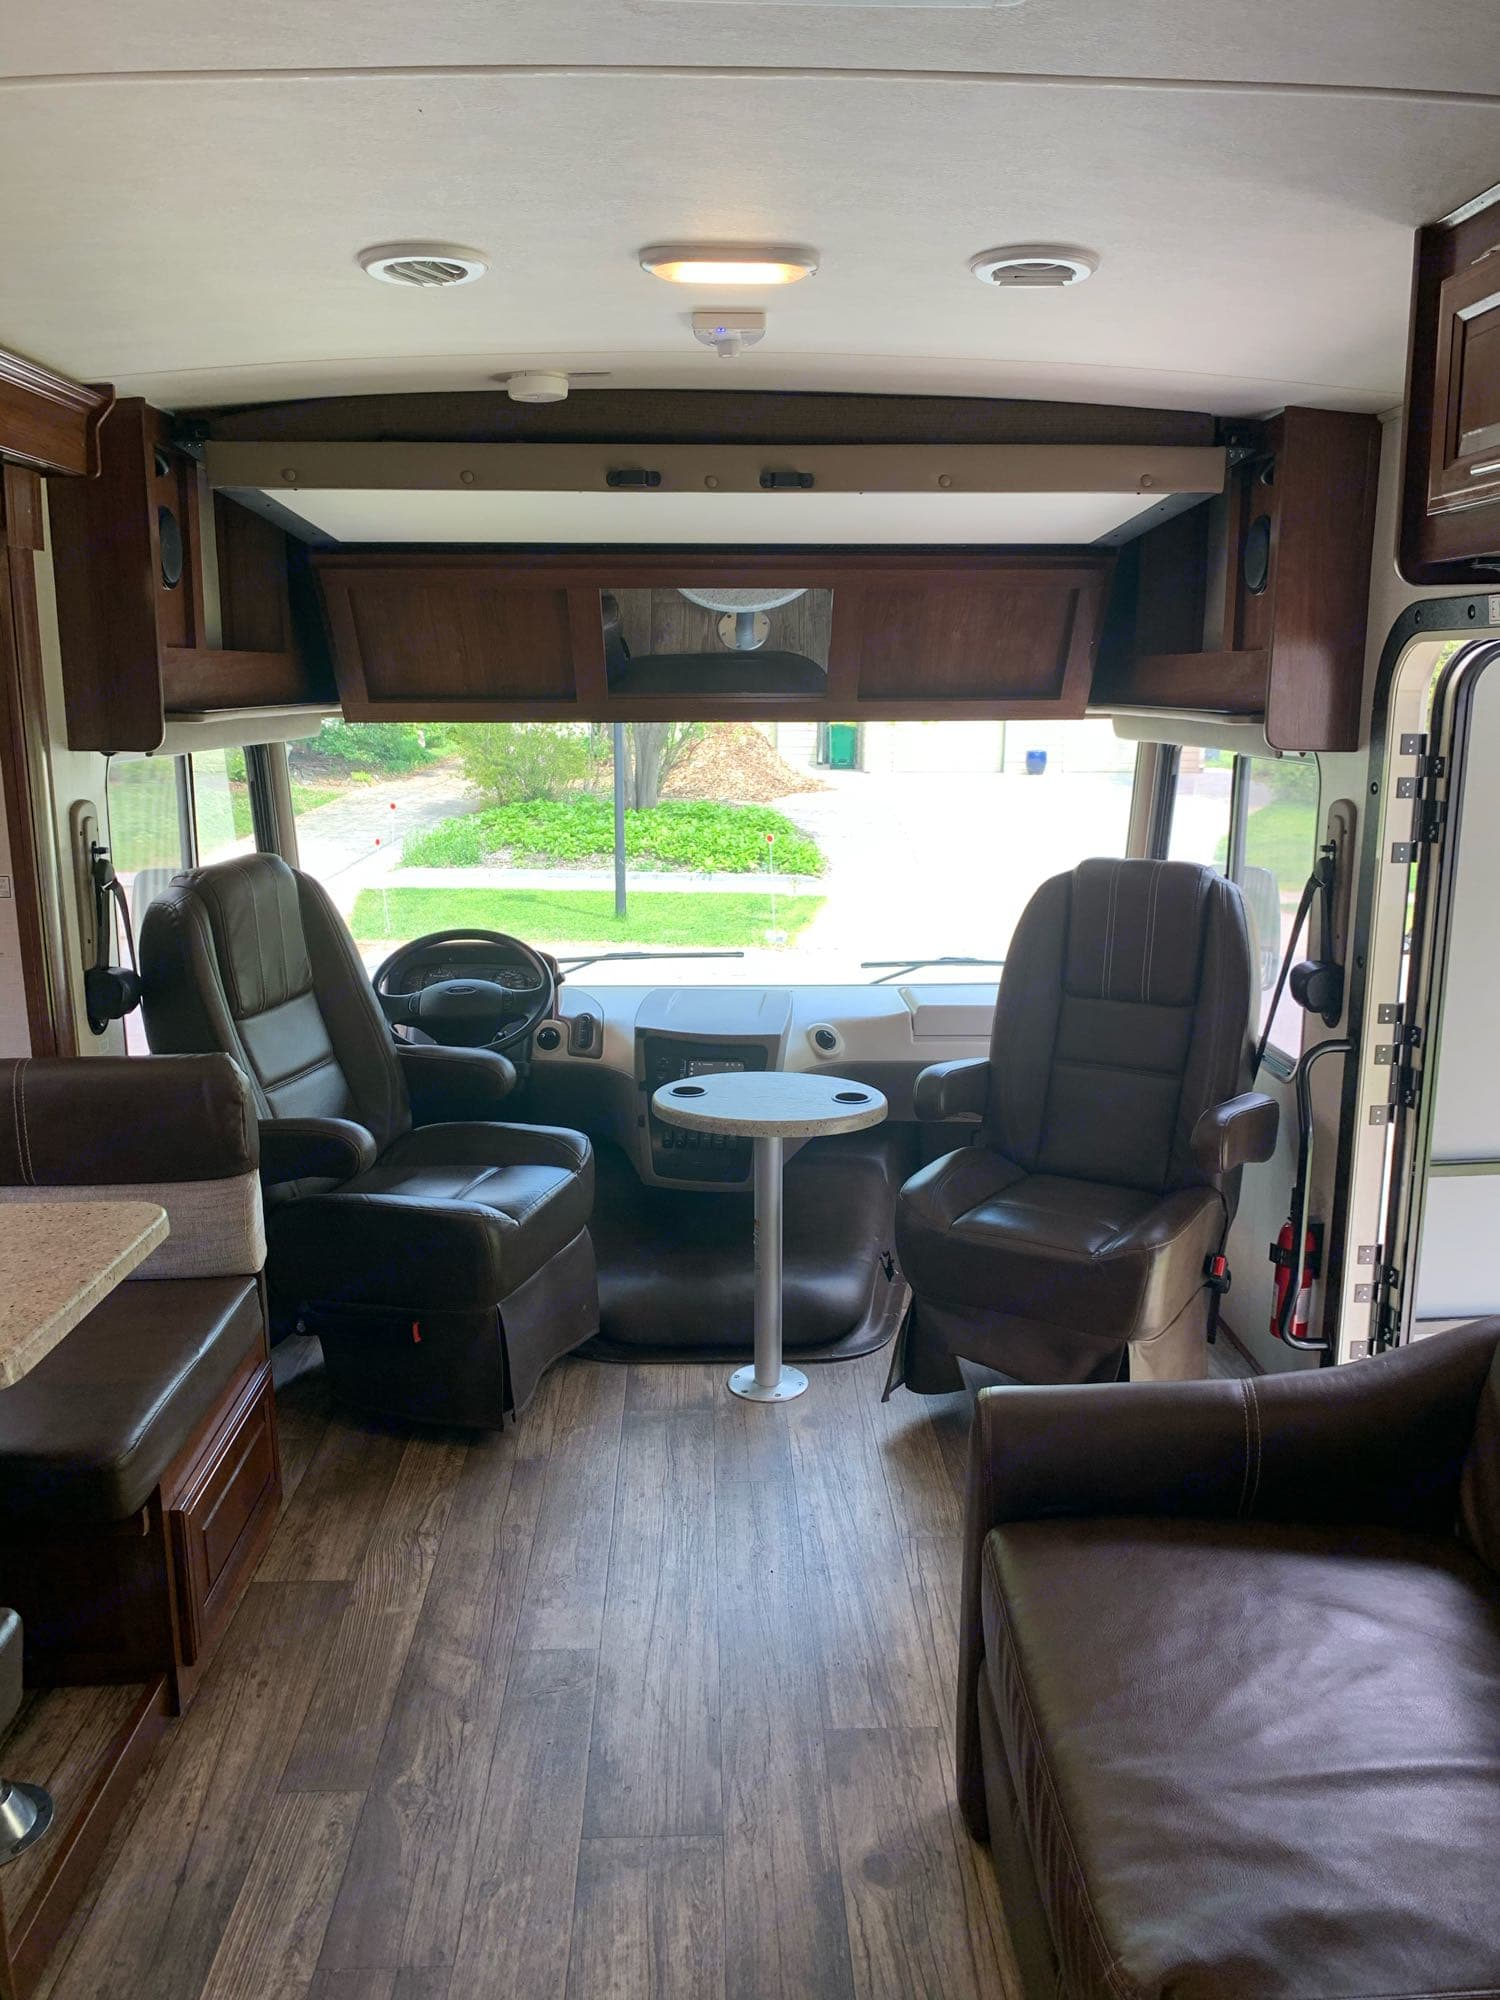 captains chairs swivel for additional living area seating. Forest River Fr3 2017